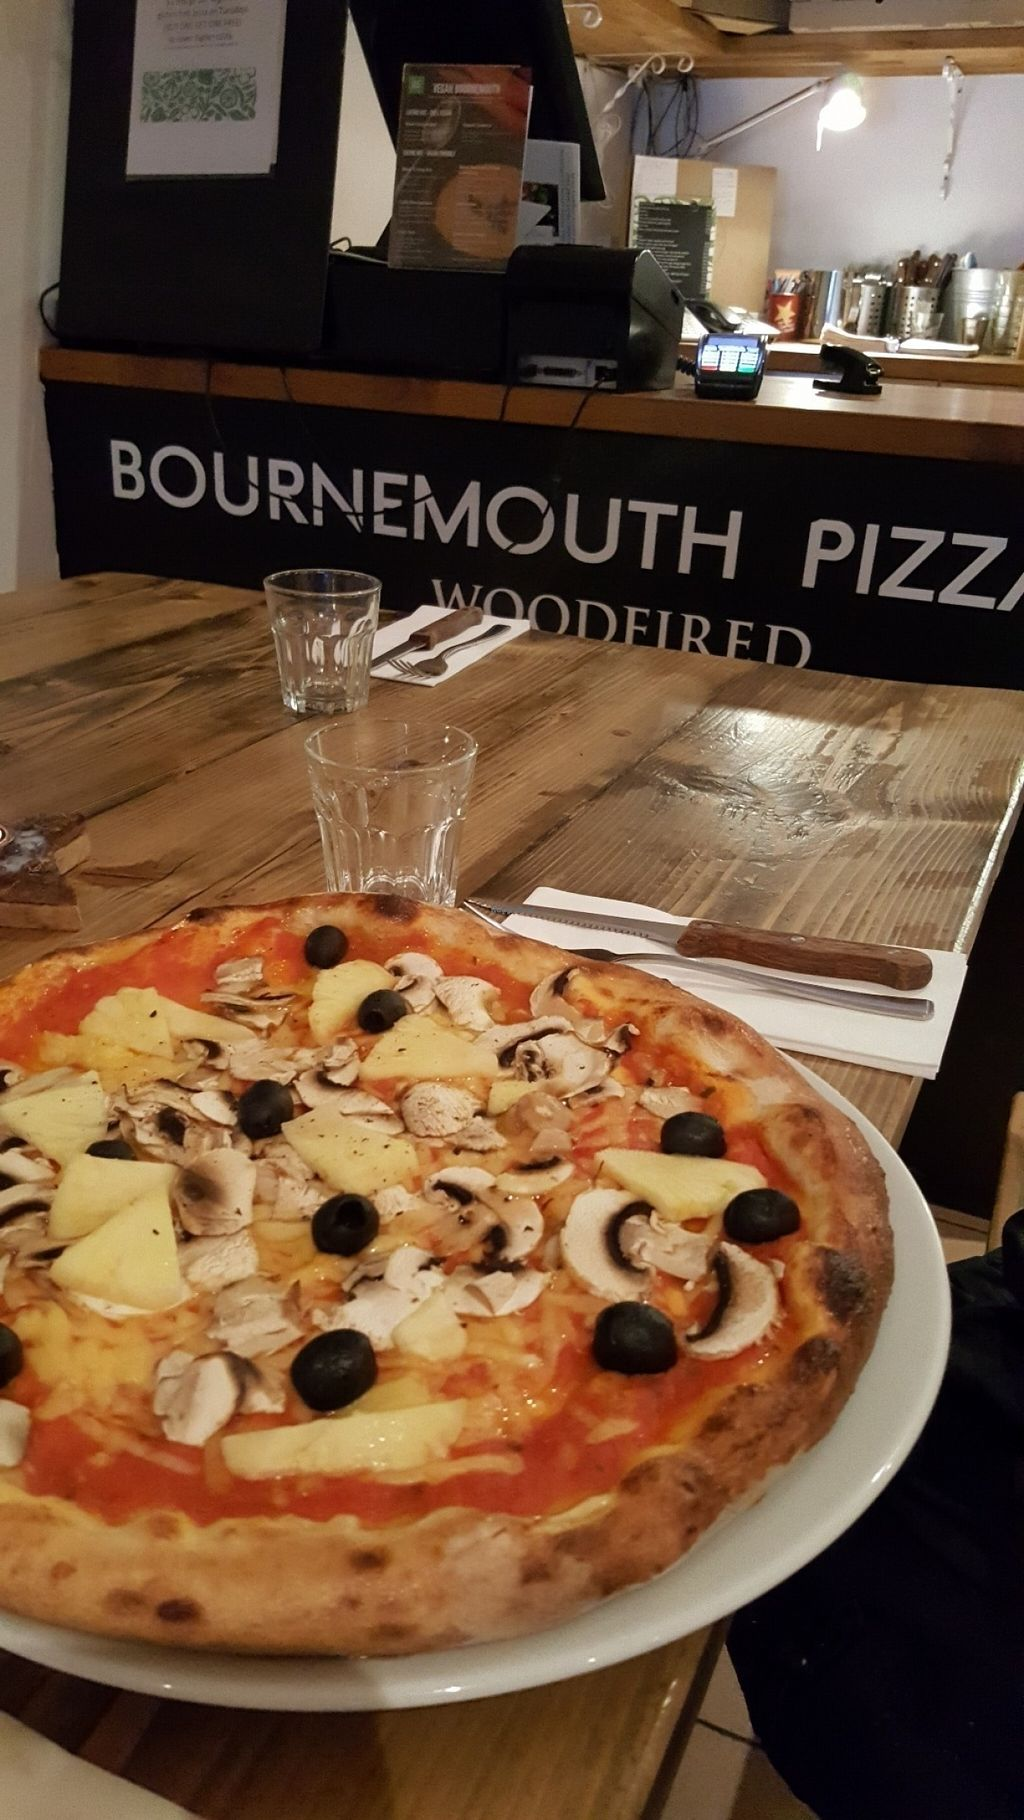 """Photo of Bournemouth Pizza   by <a href=""""/members/profile/Clare"""">Clare</a> <br/>Vegan pizza with violife cheese <br/> July 18, 2016  - <a href='/contact/abuse/image/68302/160787'>Report</a>"""